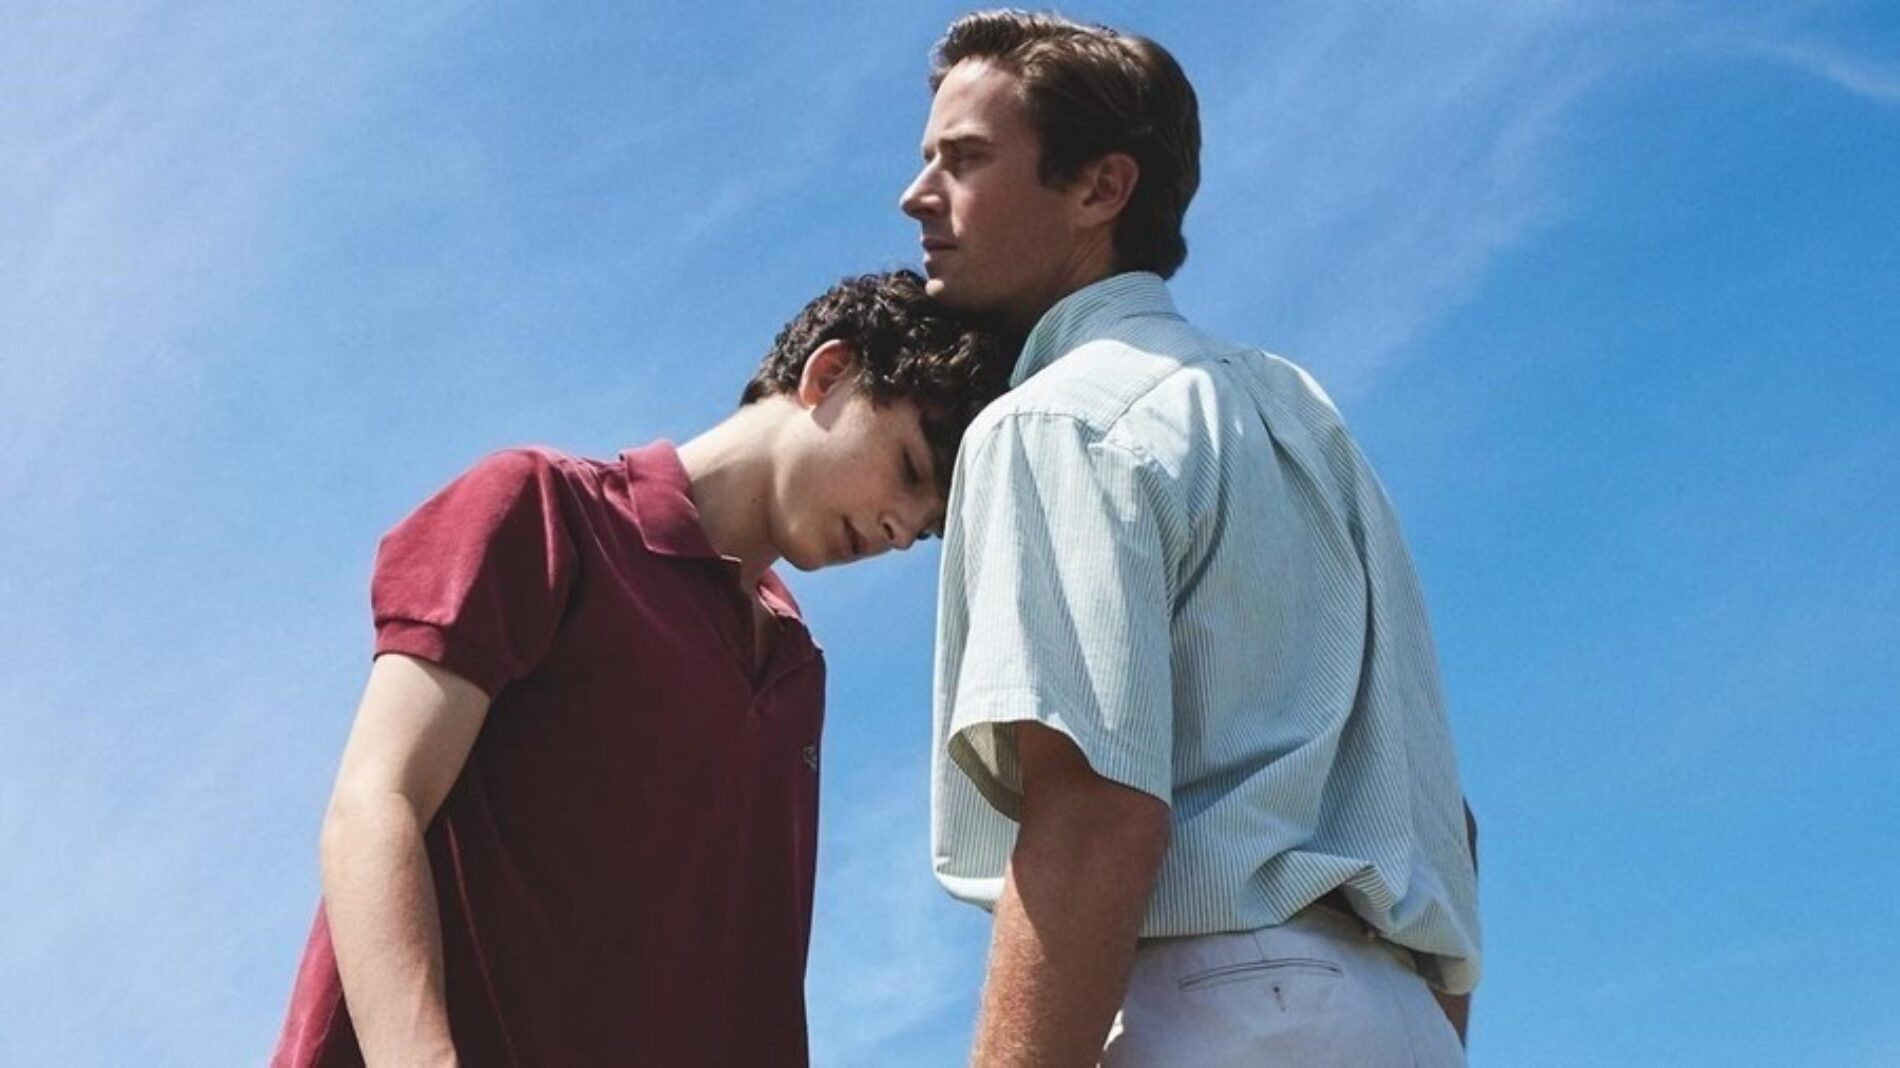 'Call Me By Your Name' Sequel May No Longer Be Happening